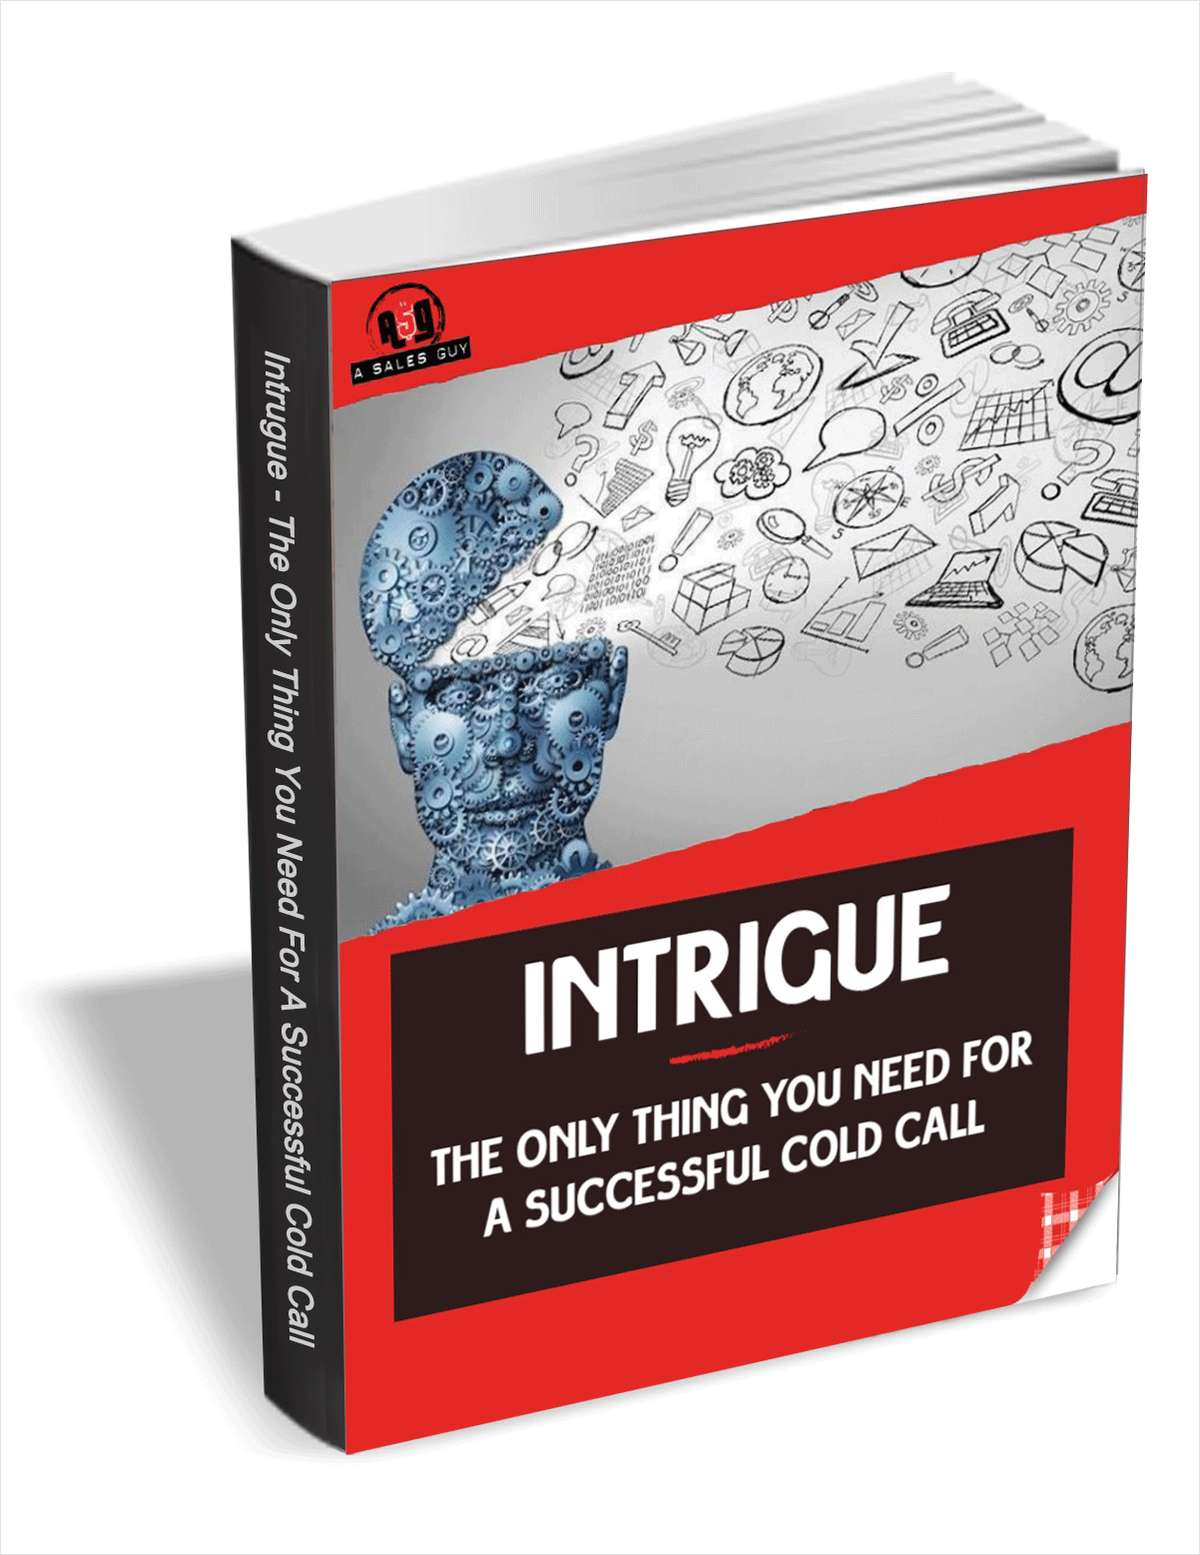 Intrigue - The Only Thing You Need for a Successful Cold Call